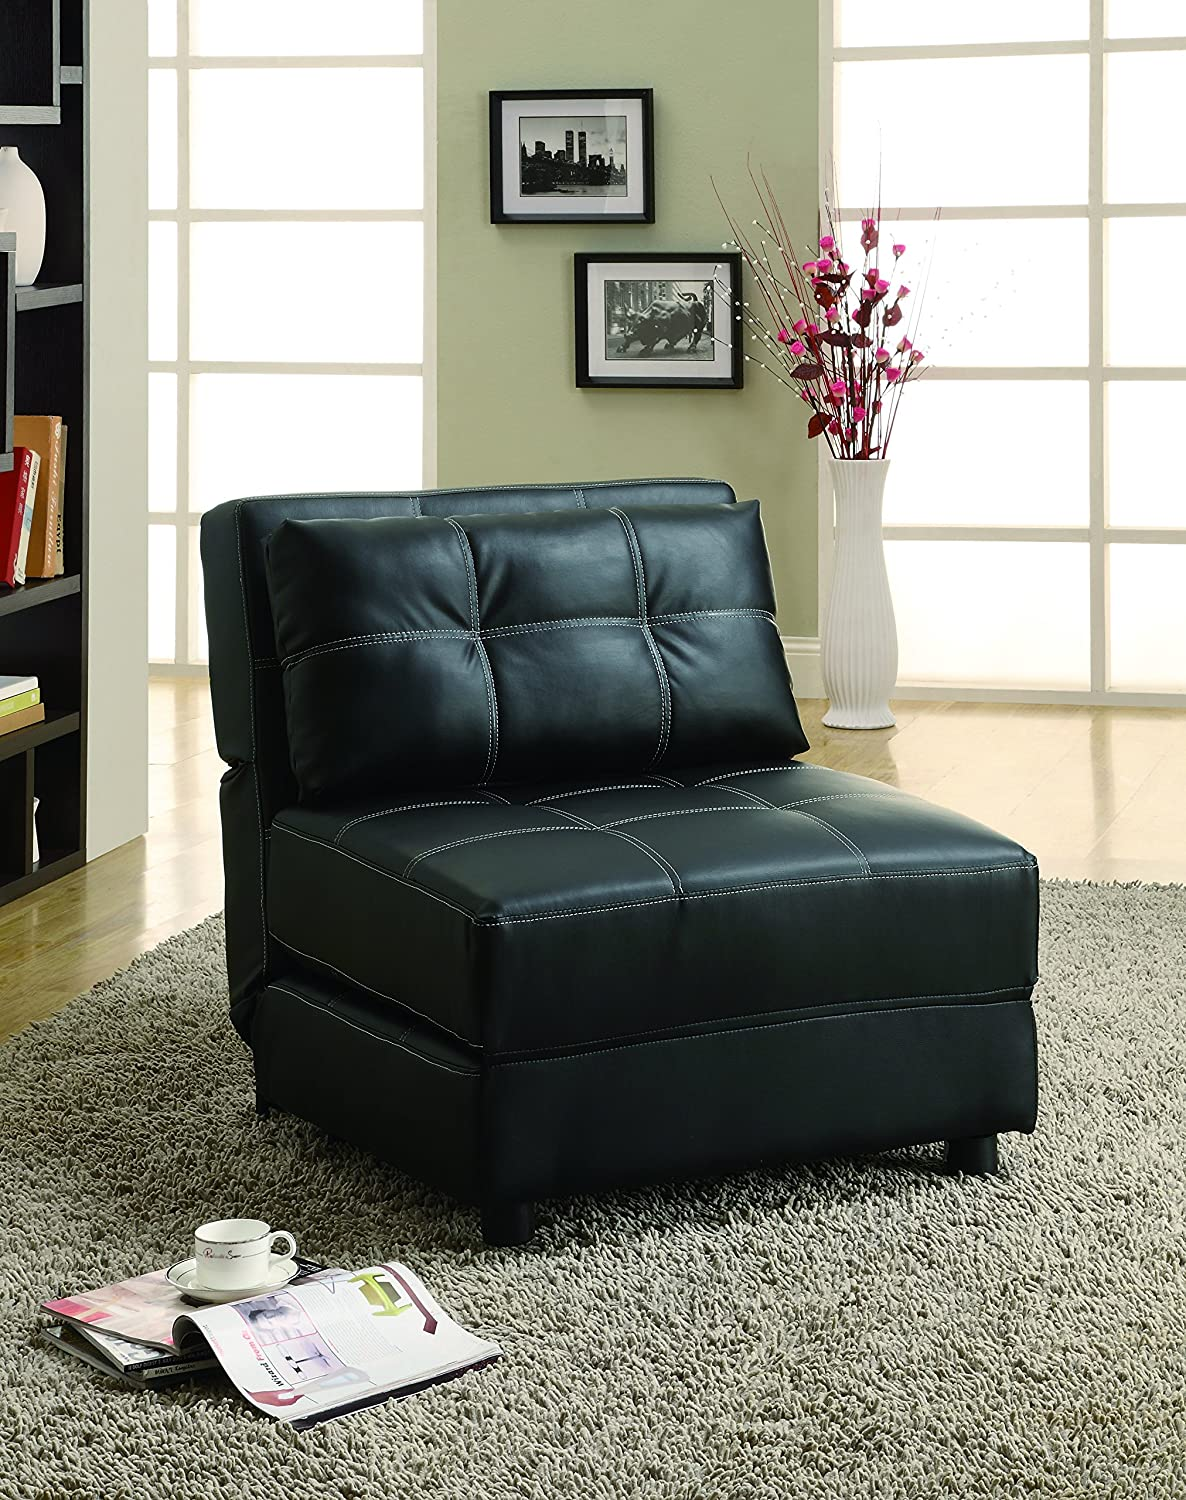 2.Coaster Casual Black Leather Armless Lounge Chair